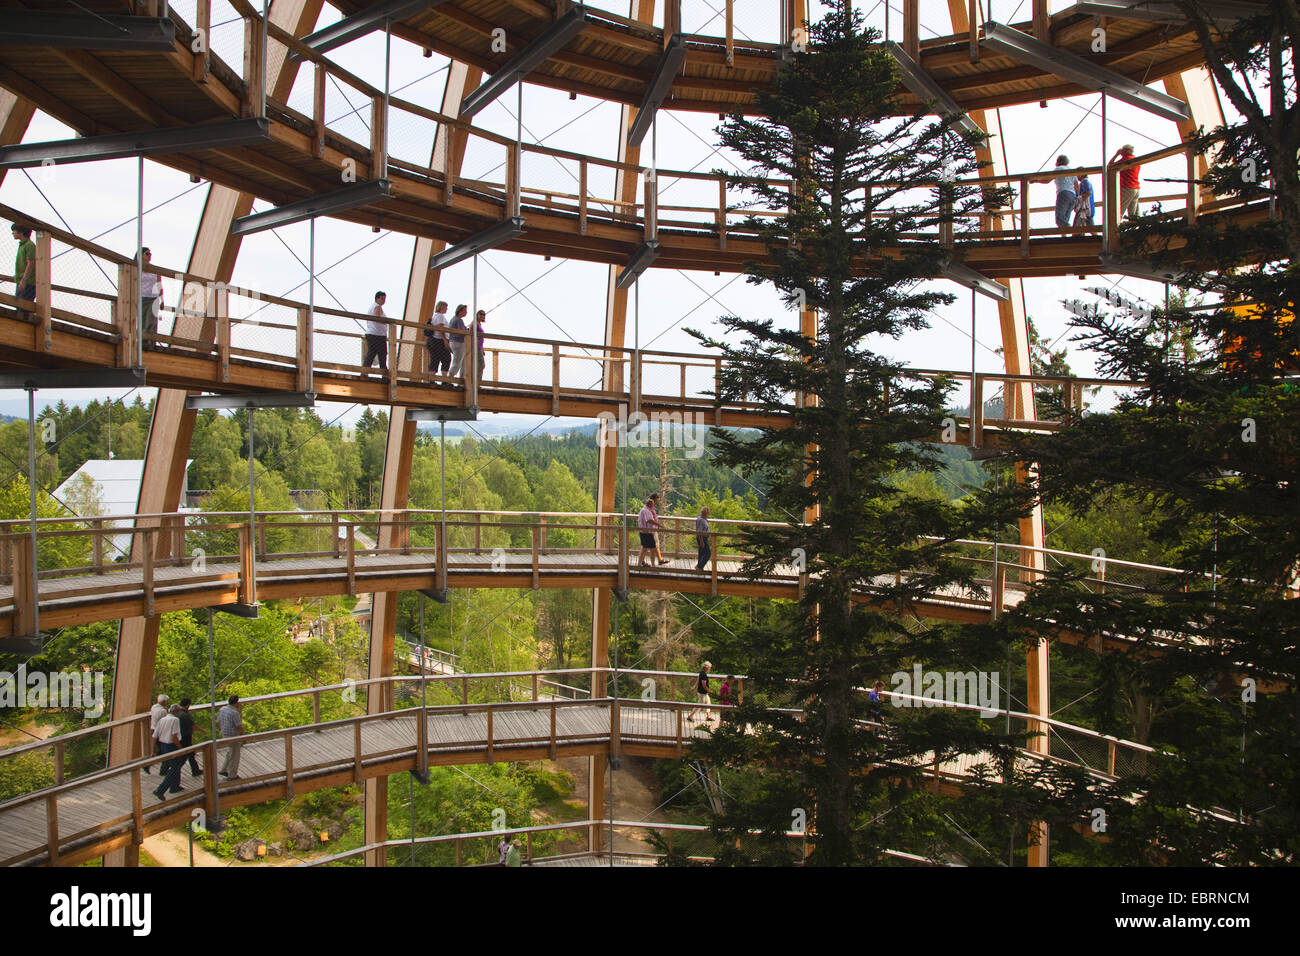 Viewing Tower of the Tree top walk in National Park Bavarian Forest, Germany, Bavaria, Bavarian Forest National - Stock Image